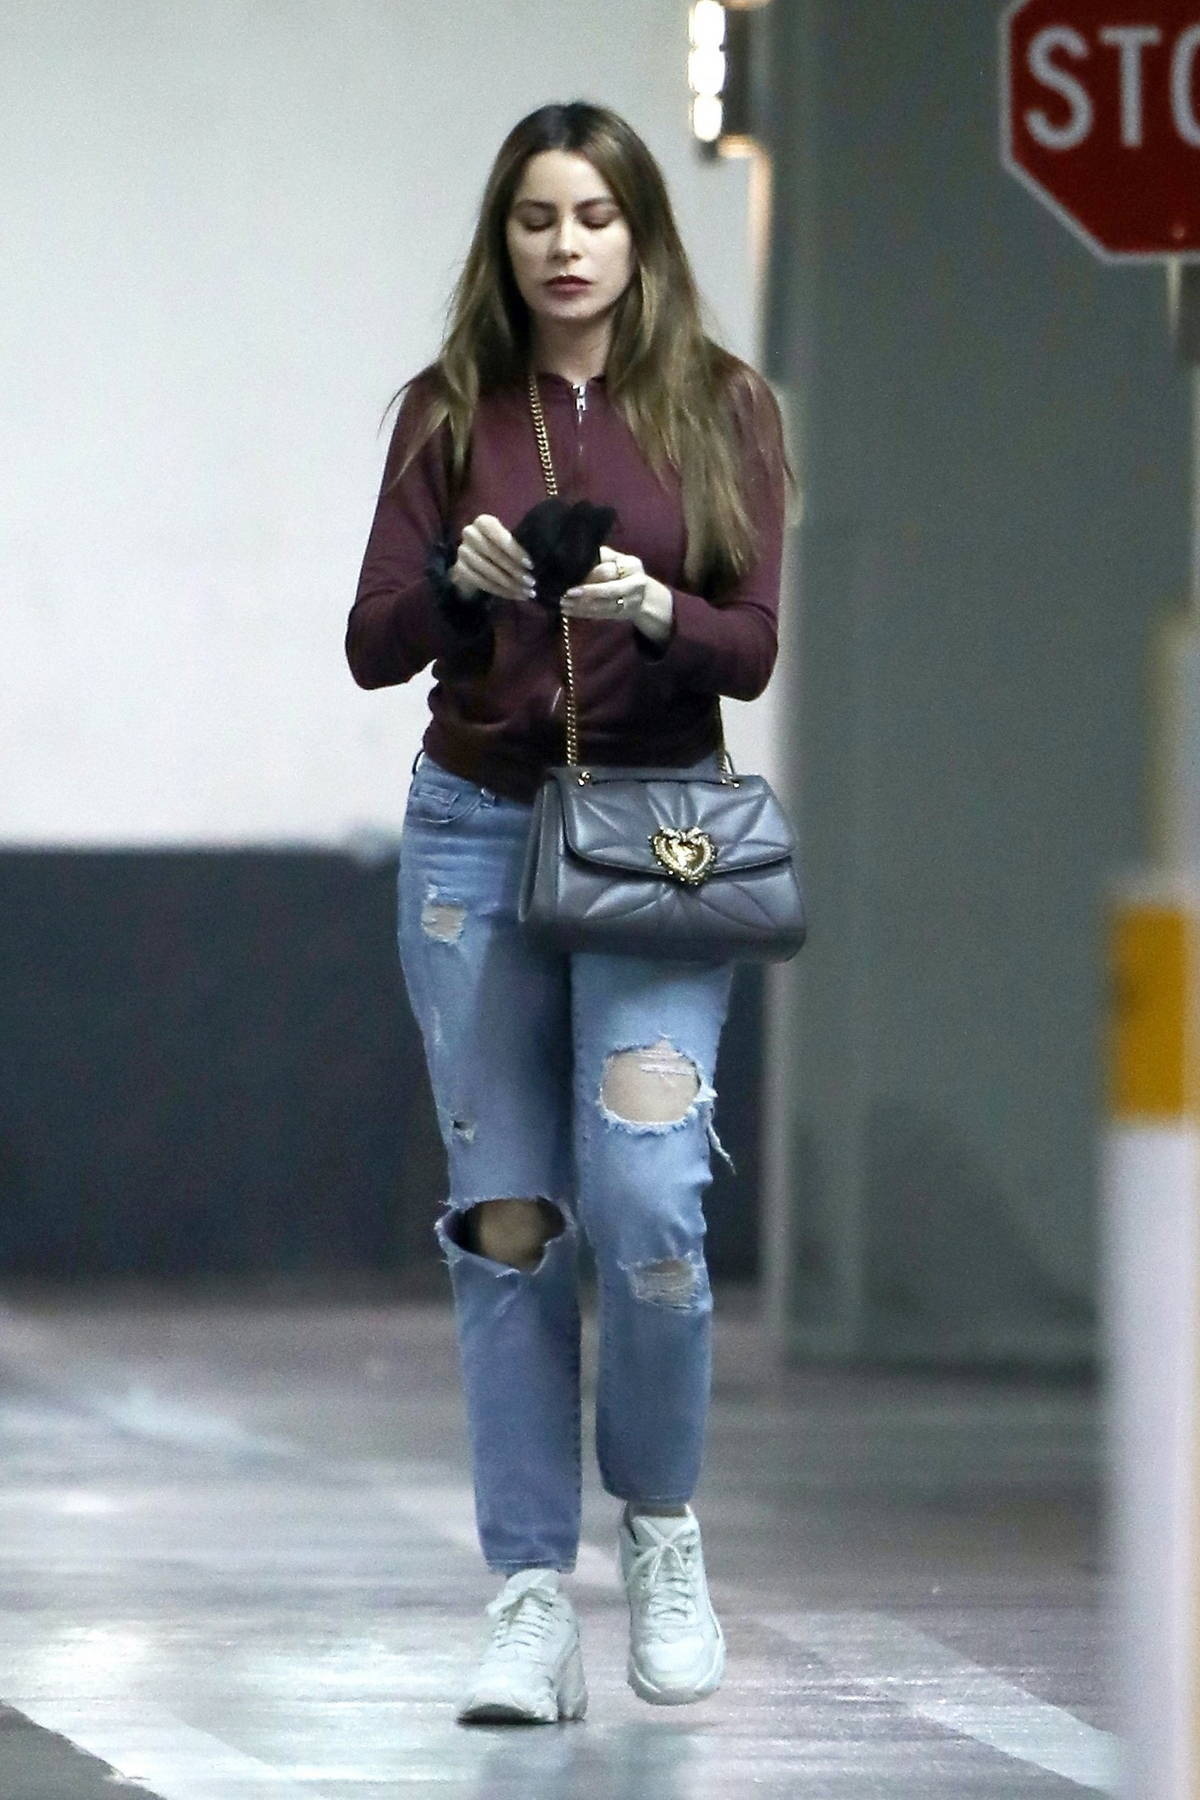 Sofia Vergara keeps it casual while visiting the doctor's office in Los Angeles